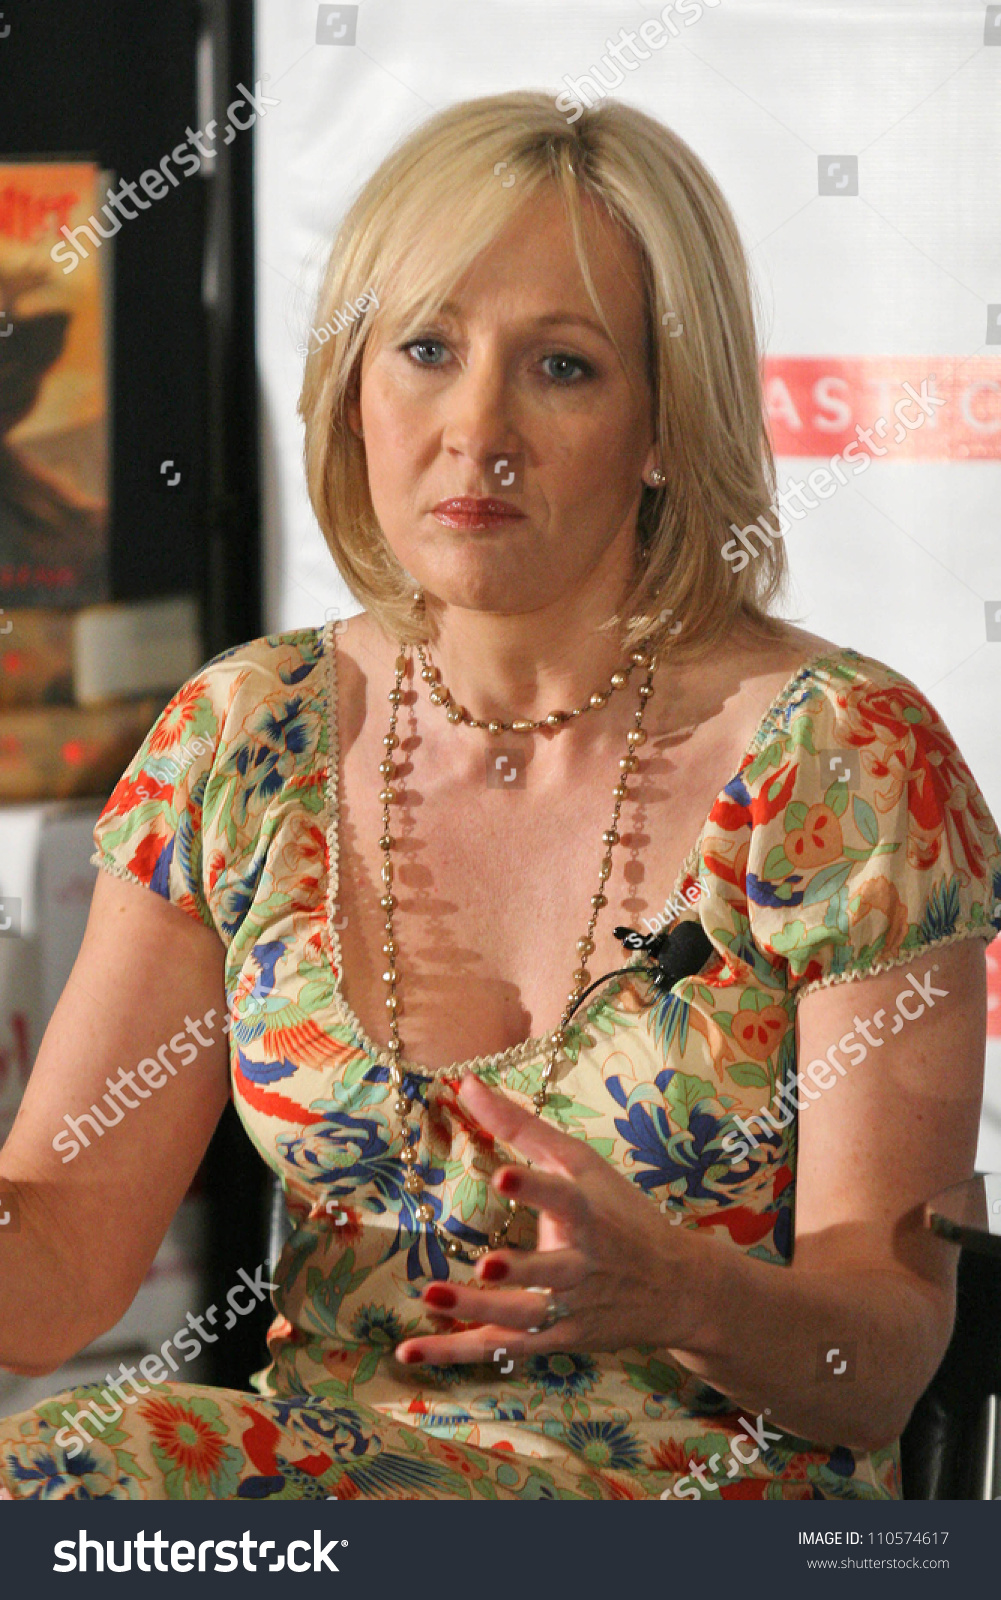 Jk Rowling Press Conference Promote Her Stock Photo Edit Now